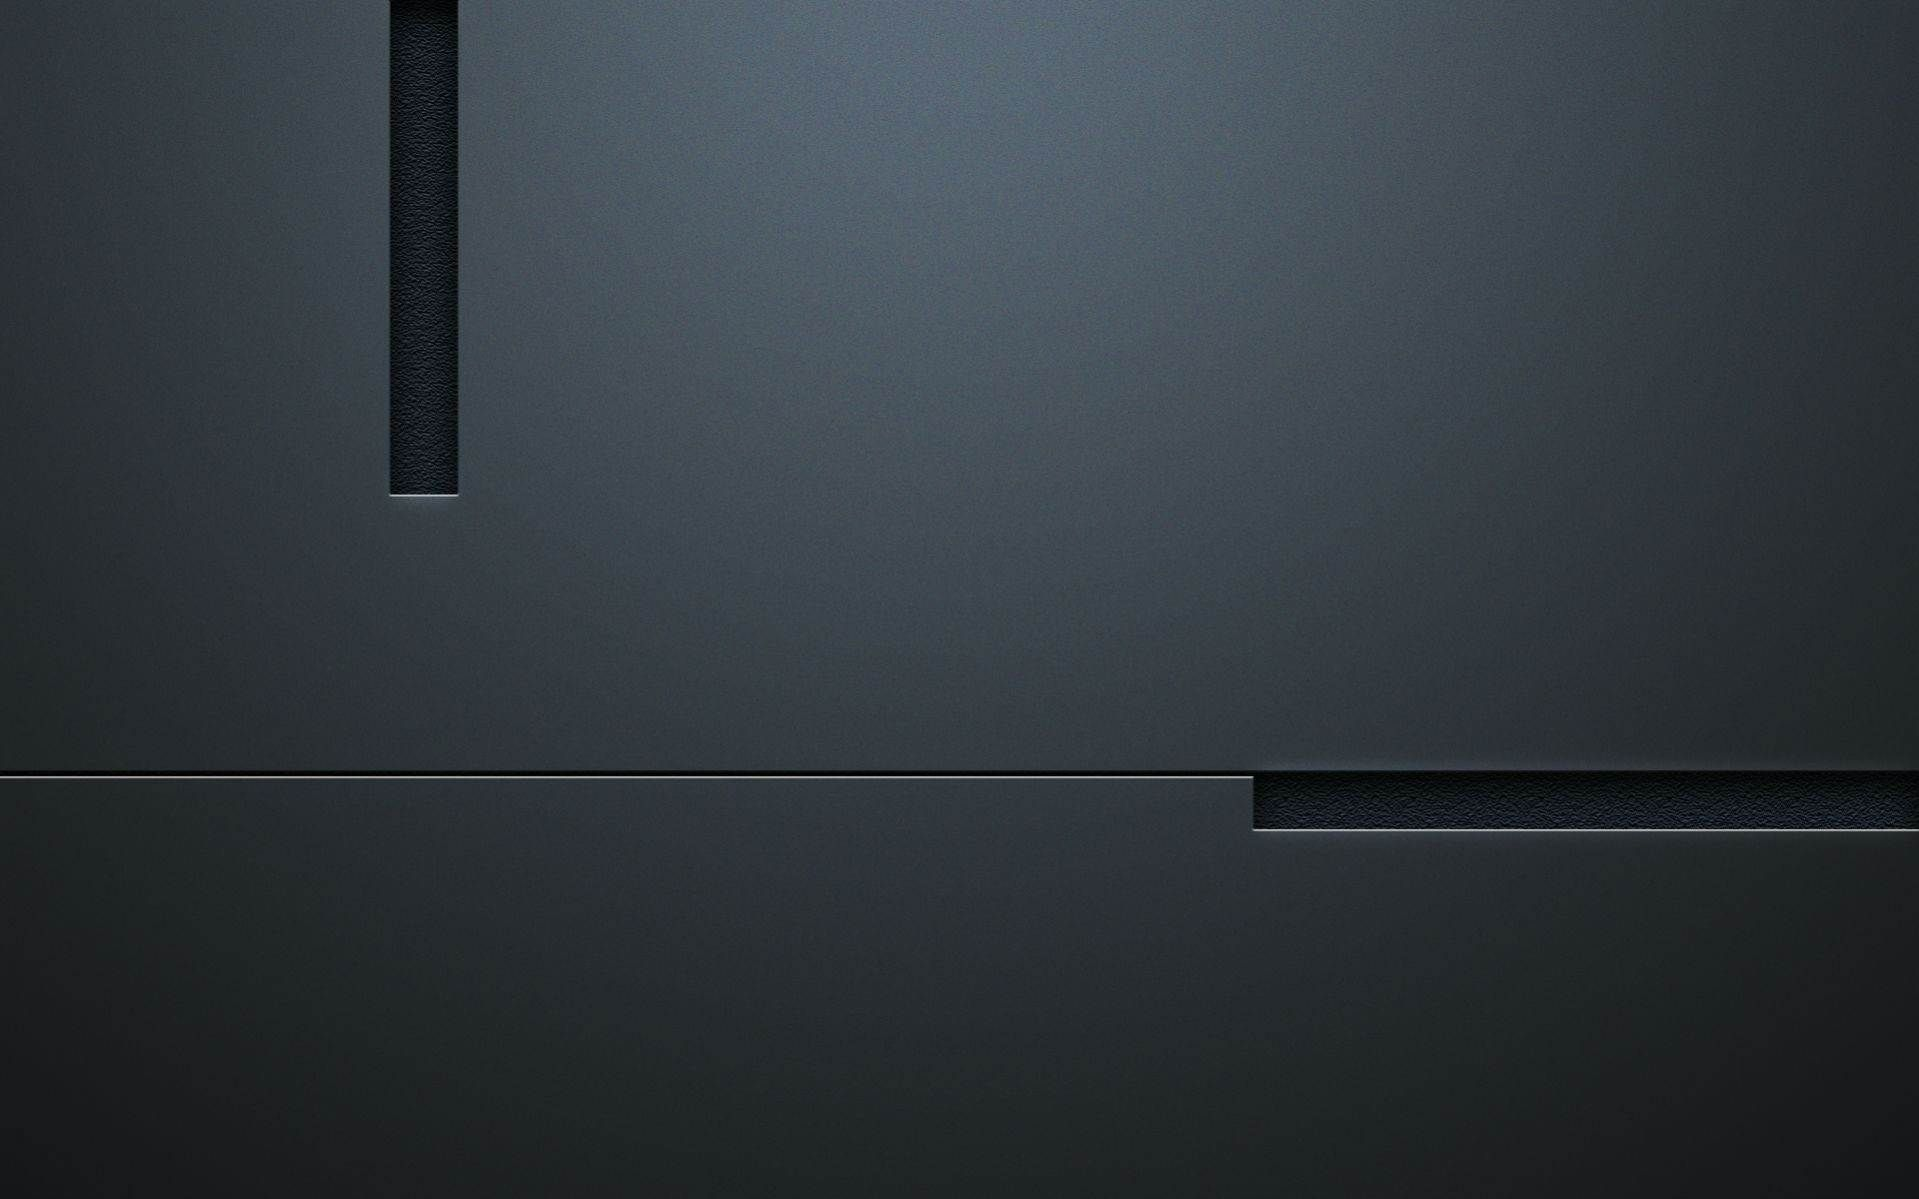 Foyer Wallpaper Android : Images about minimalistic ★ iphone wallpapers on